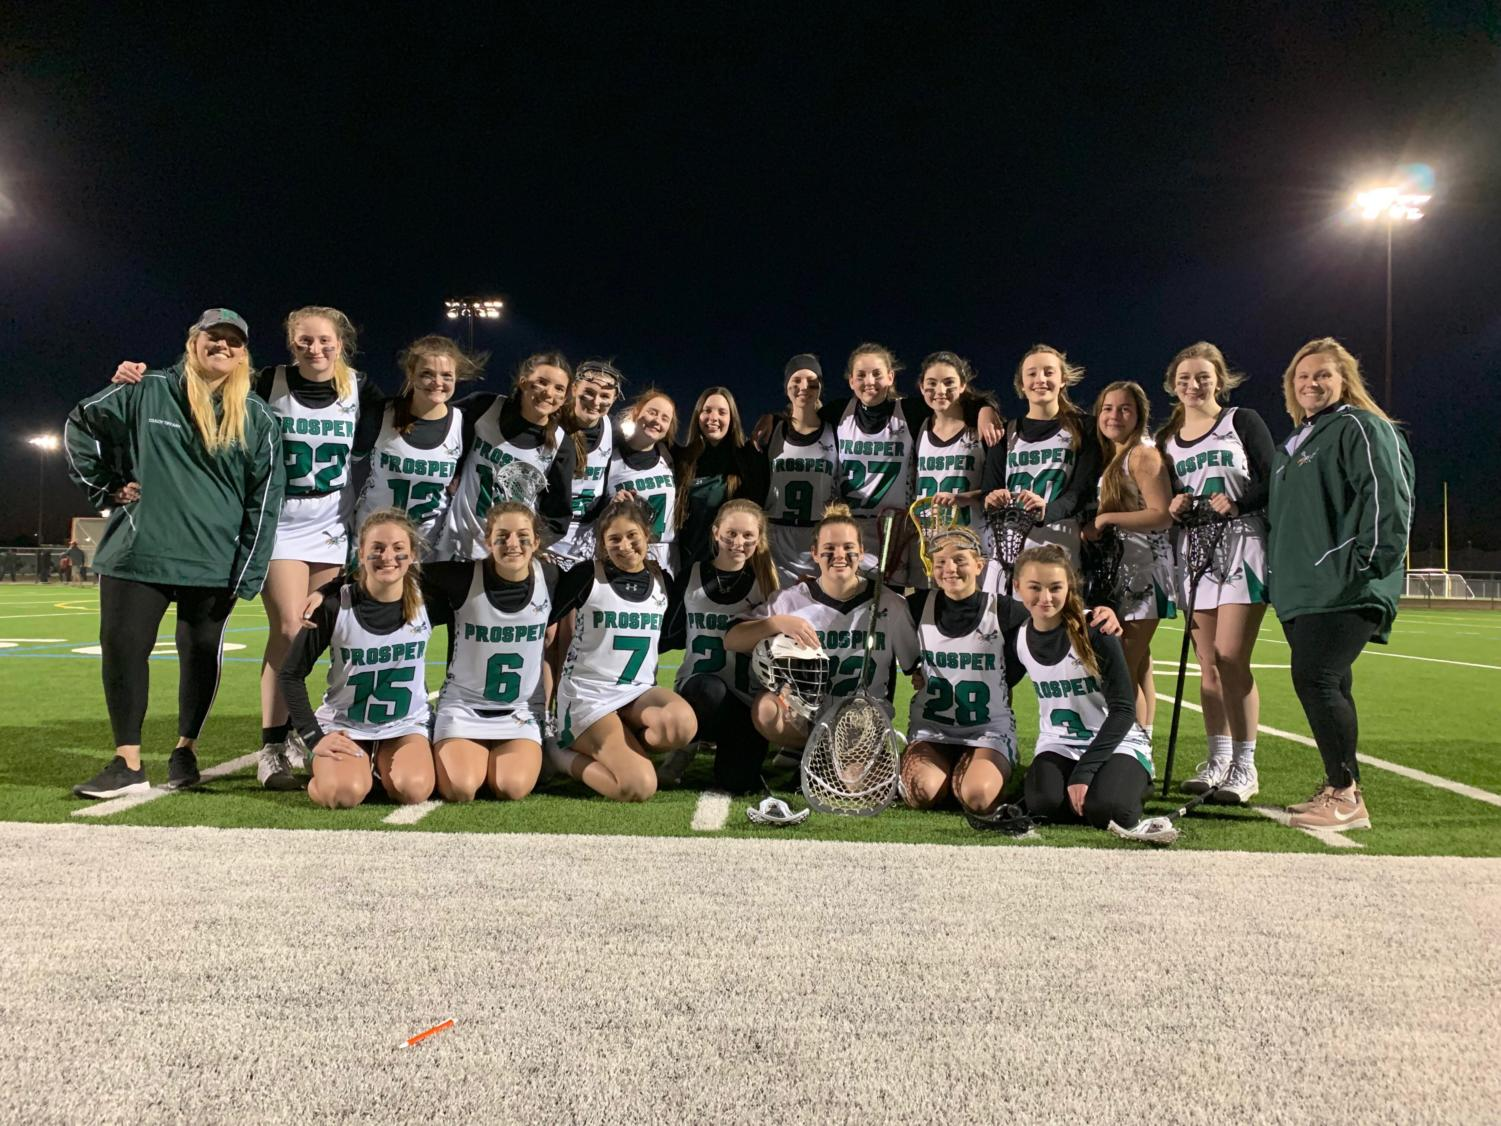 The Prosper Girl's Lacrosse team won their first game of the season Monday, Feb. 25. The Eagle's beat Ursuline 9-3, with 6 goals from sophomore Angie Ruiz. They will play next tomorrow, Feb. 28 against Rockwall.   Left to right top row:  Assistant Coach Tiffany Seabright, Jacey Oxner, Logan Hulvey, Julia Solt, Lauren Womack, Kalyn Ponders, Kadence Wahnschaffe, Taylor Sweet, Ella Dellenbach, Merritt Bauss, Nola Richardson, Alex Pavolonis, Kamryn Jones, head coach Heather Freeland   Left to right bottom row:  Lily Evans, Izzy Evans, Angie Ruiz, Camden Silvestri, Hope Rasberry, Mallory Griffiths, Amandalynn Garst